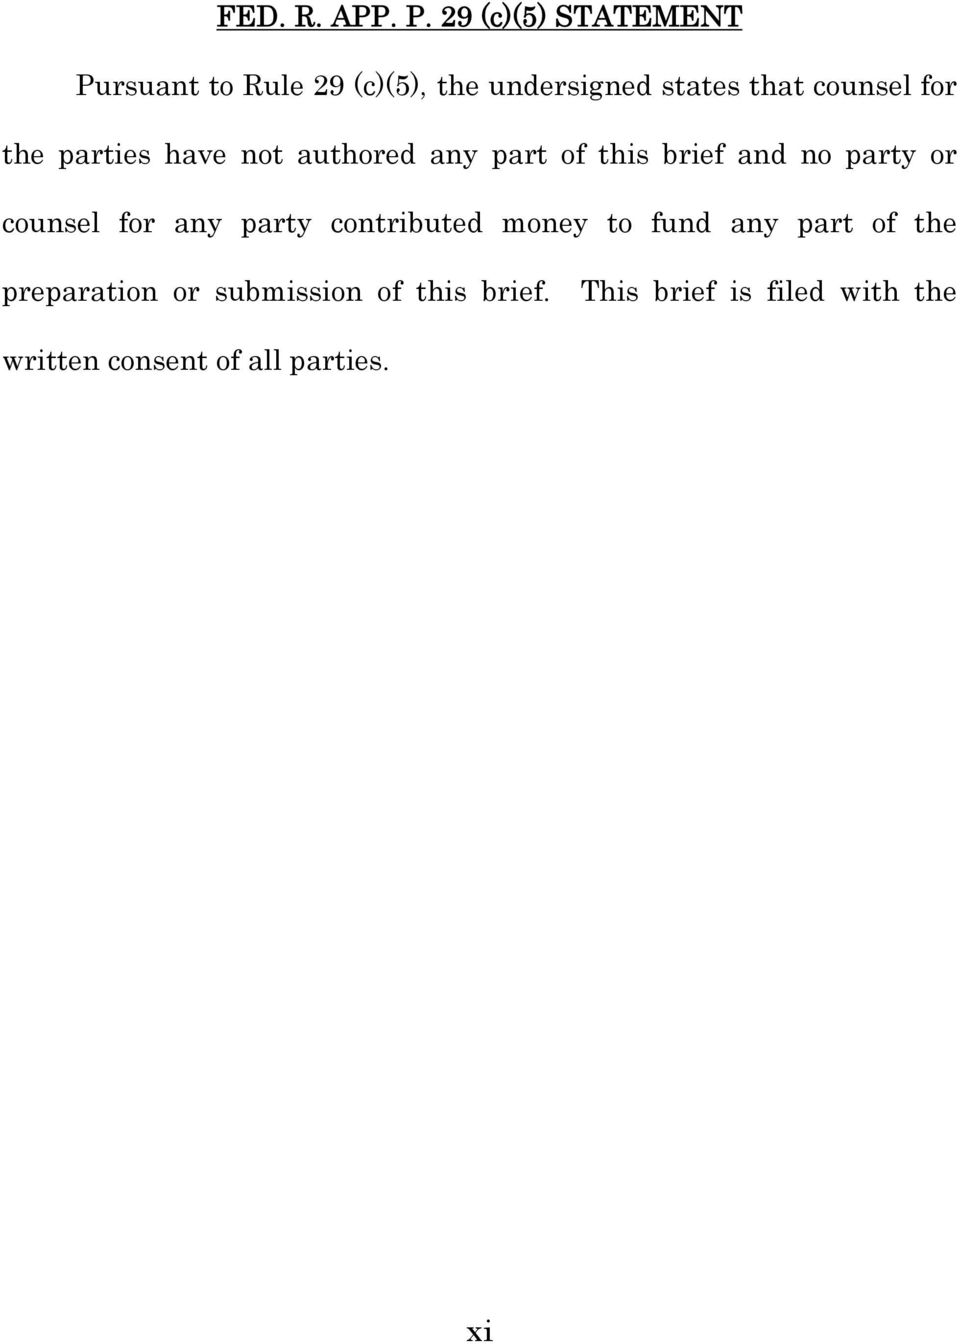 for the parties have not authored any part of this brief and no party or counsel for